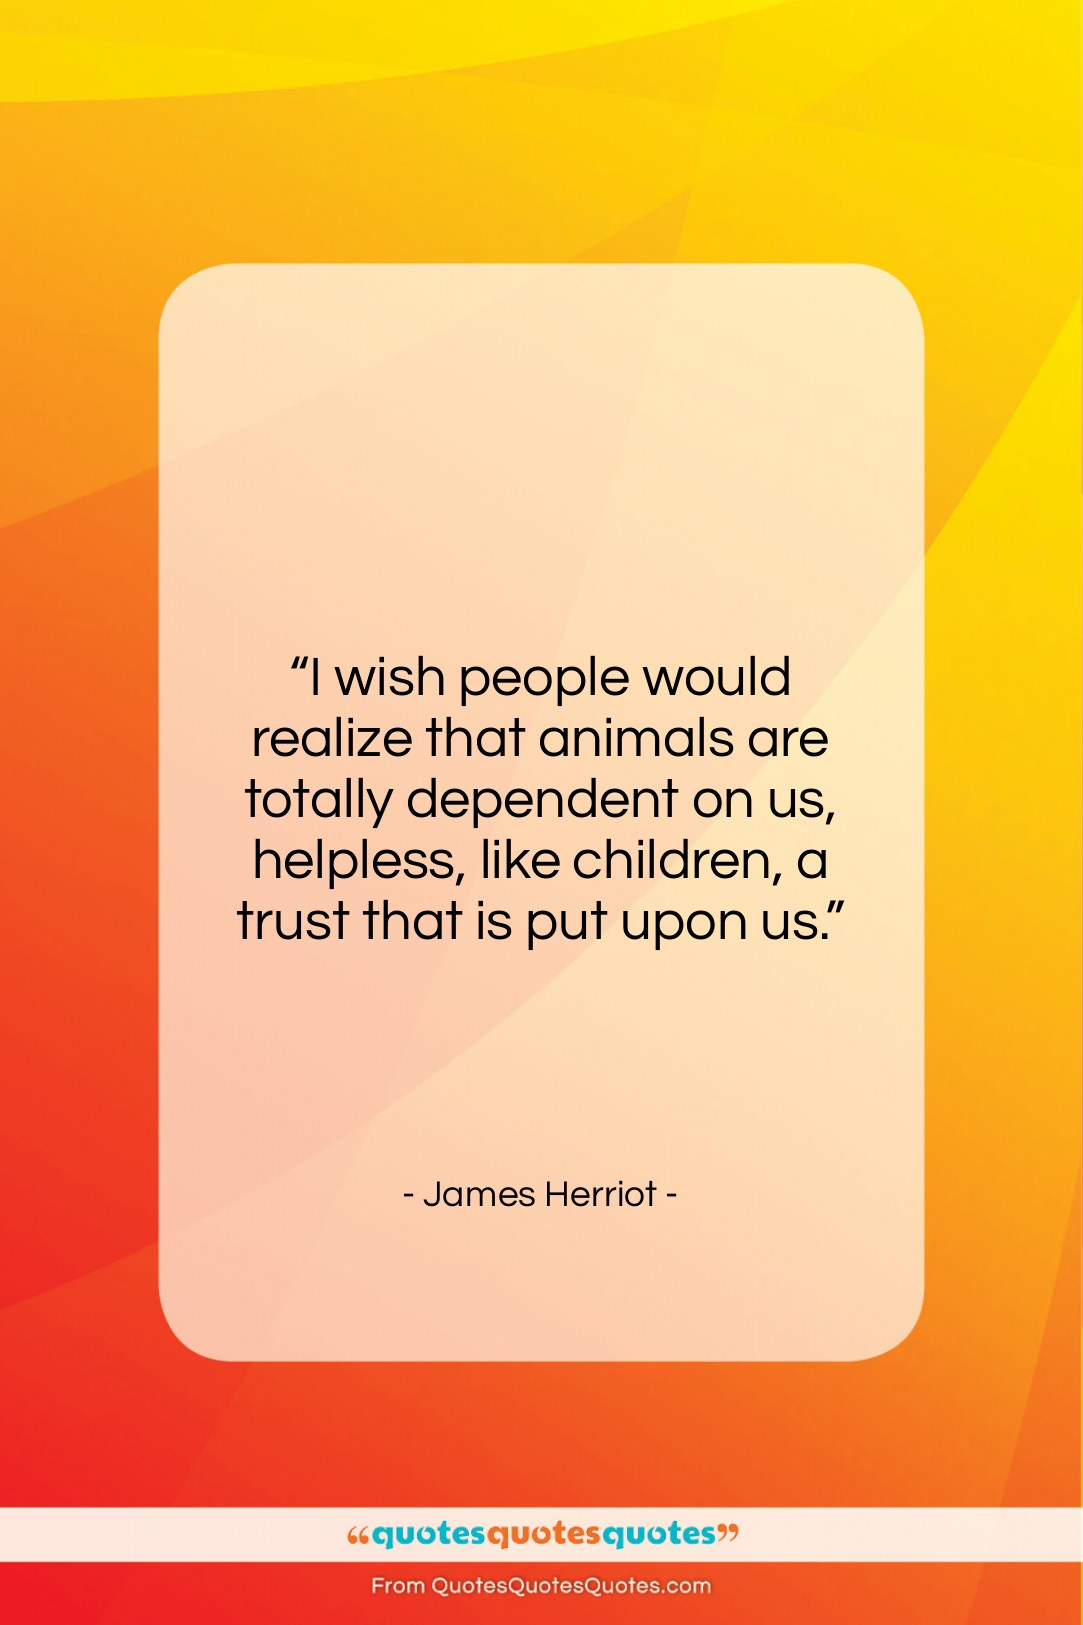 """James Herriot quote: """"I wish people would realize that animals…""""- at QuotesQuotesQuotes.com"""